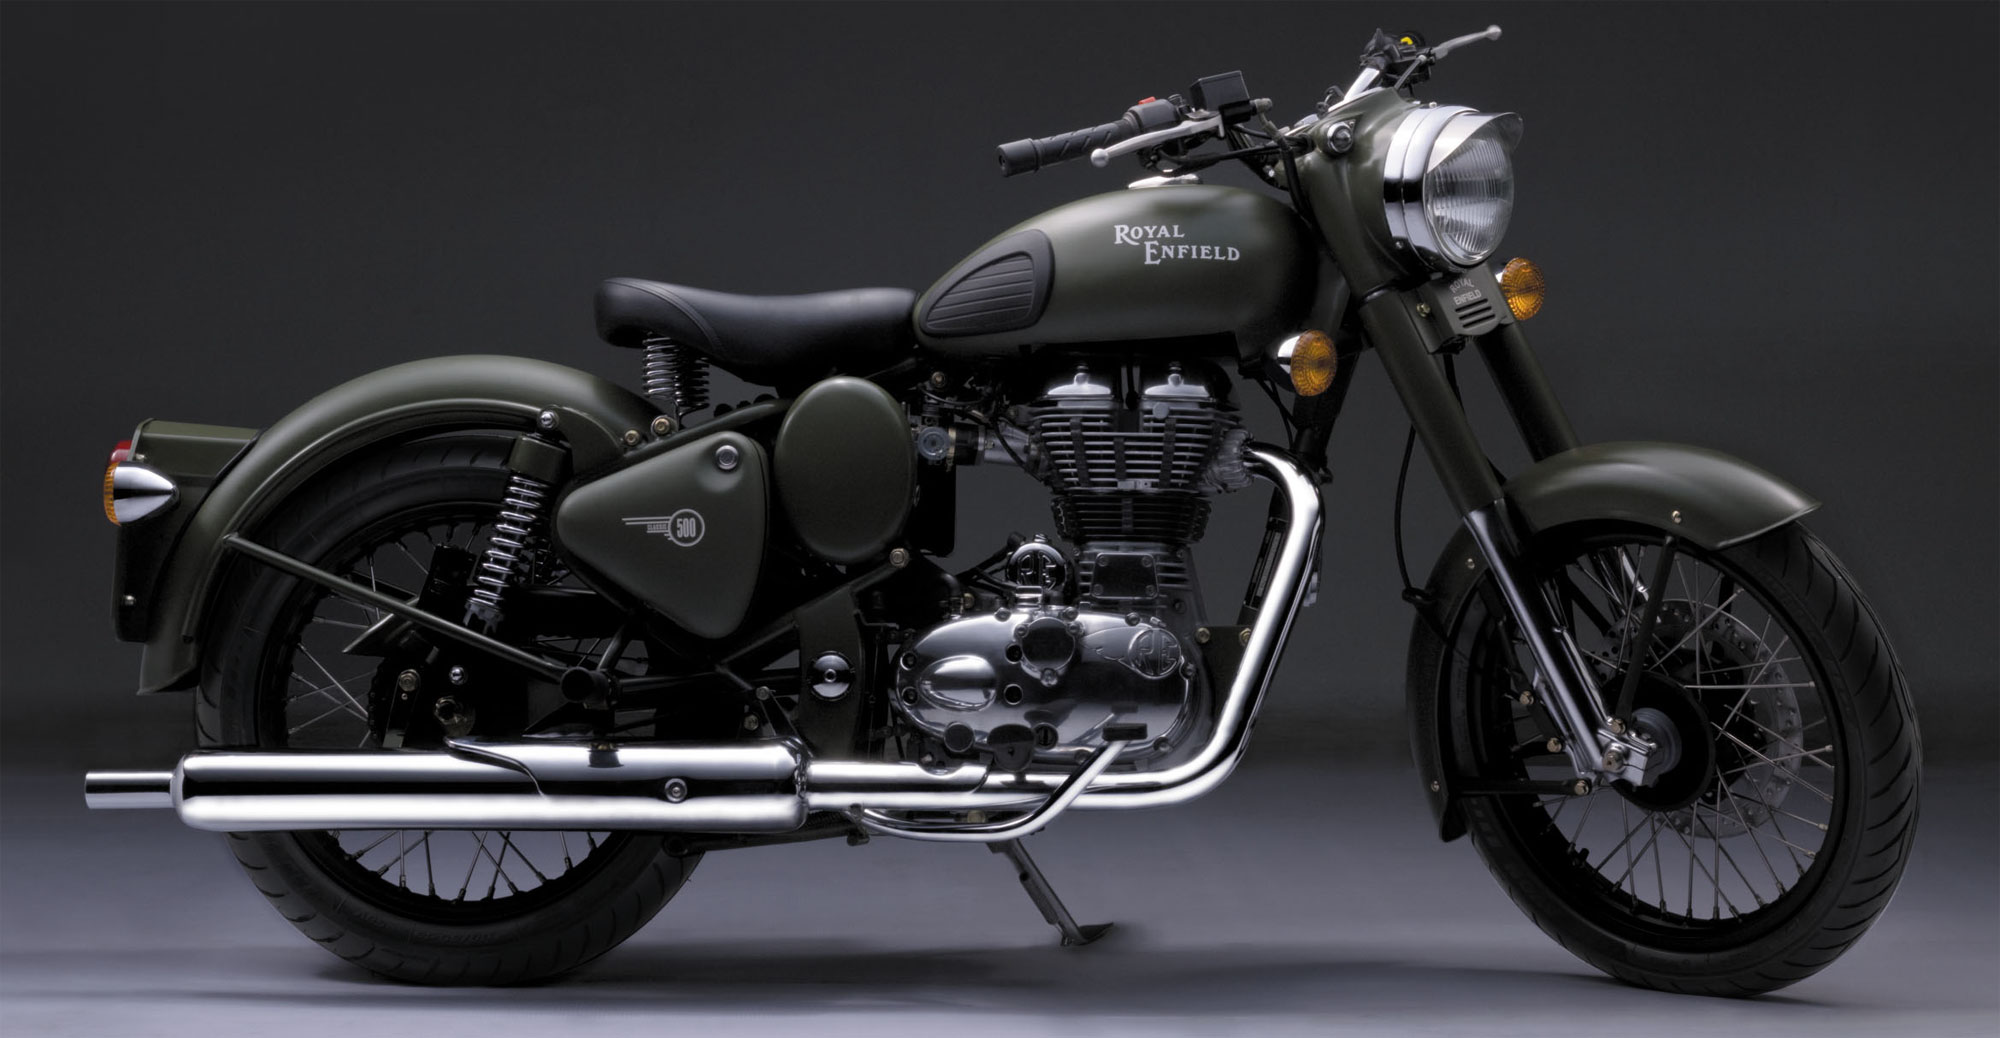 Royal Enfield Bullet 350 Classic 2006 wallpapers #141318